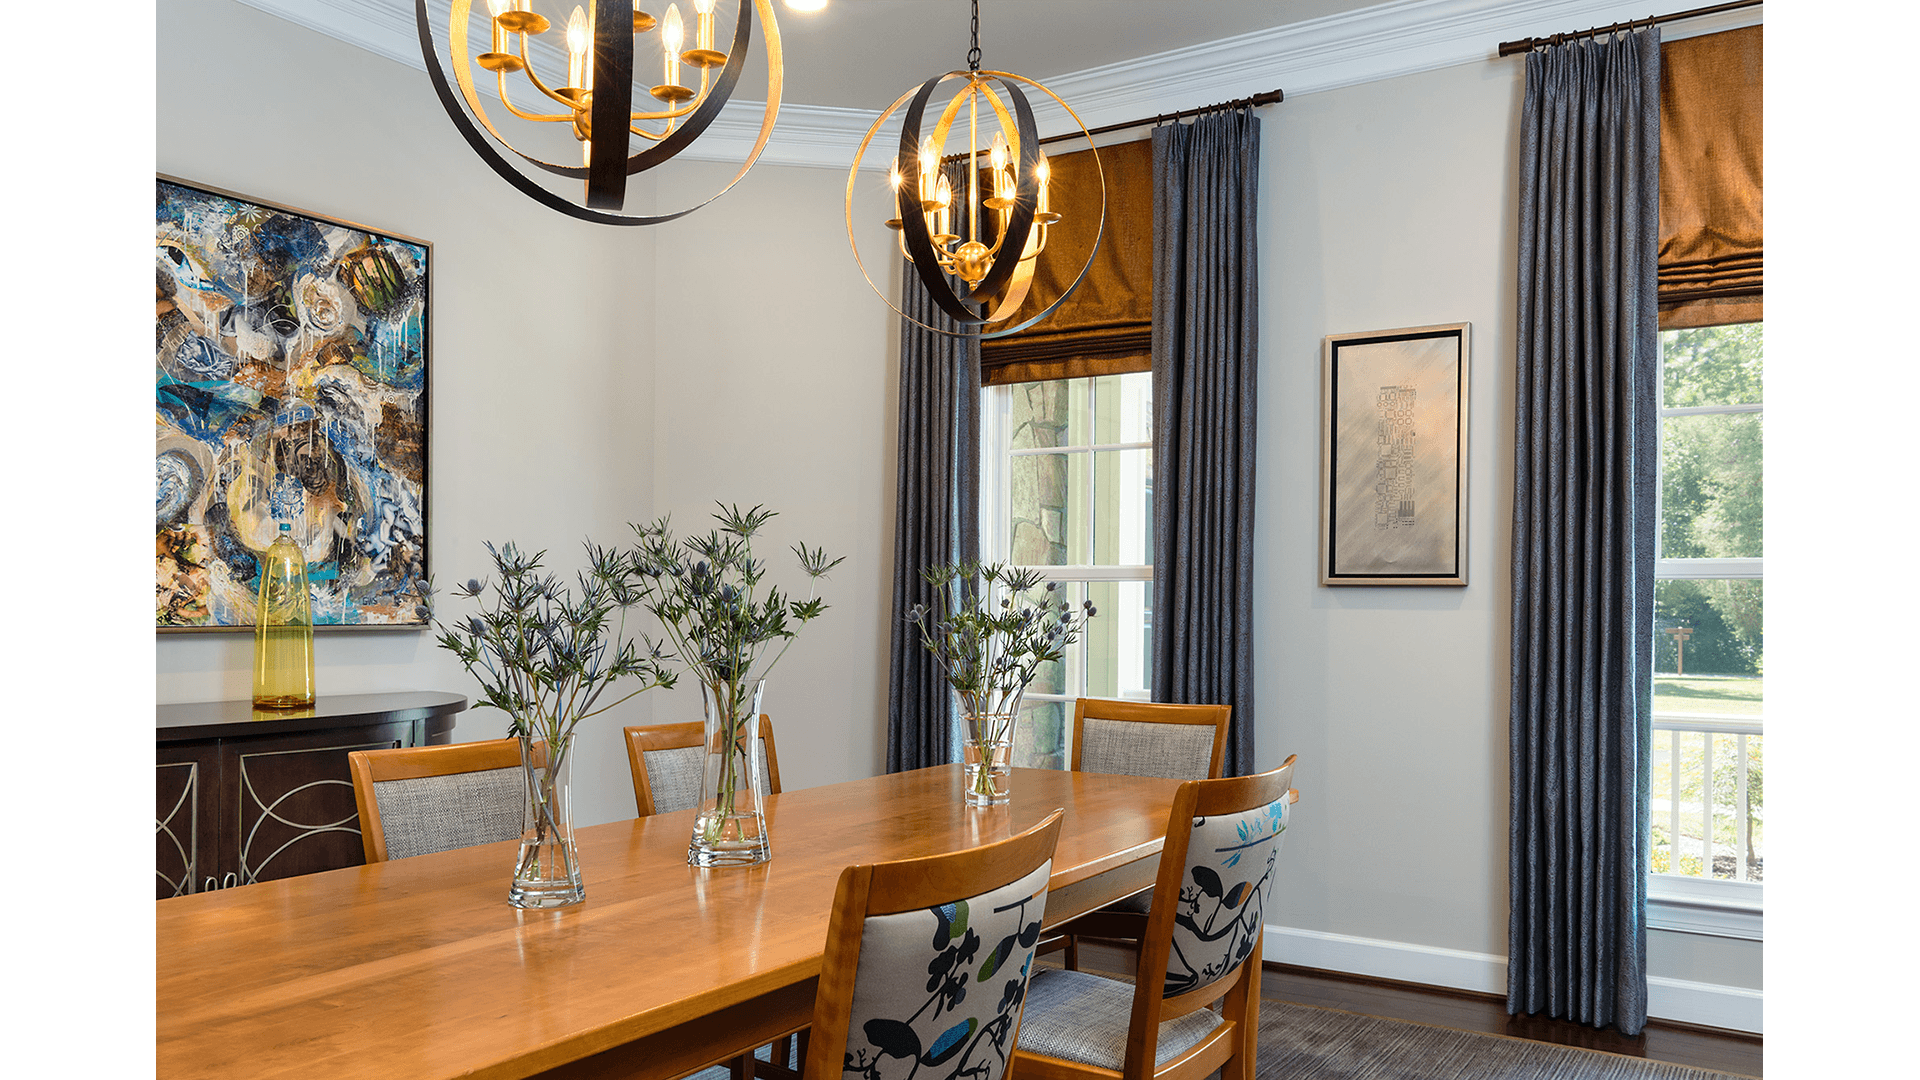 The Dining Room of a Gulick   One home on Innsbruck Avenue. © Hoachlander-Davis Photography. All Rights Reserved. Used with Permission.